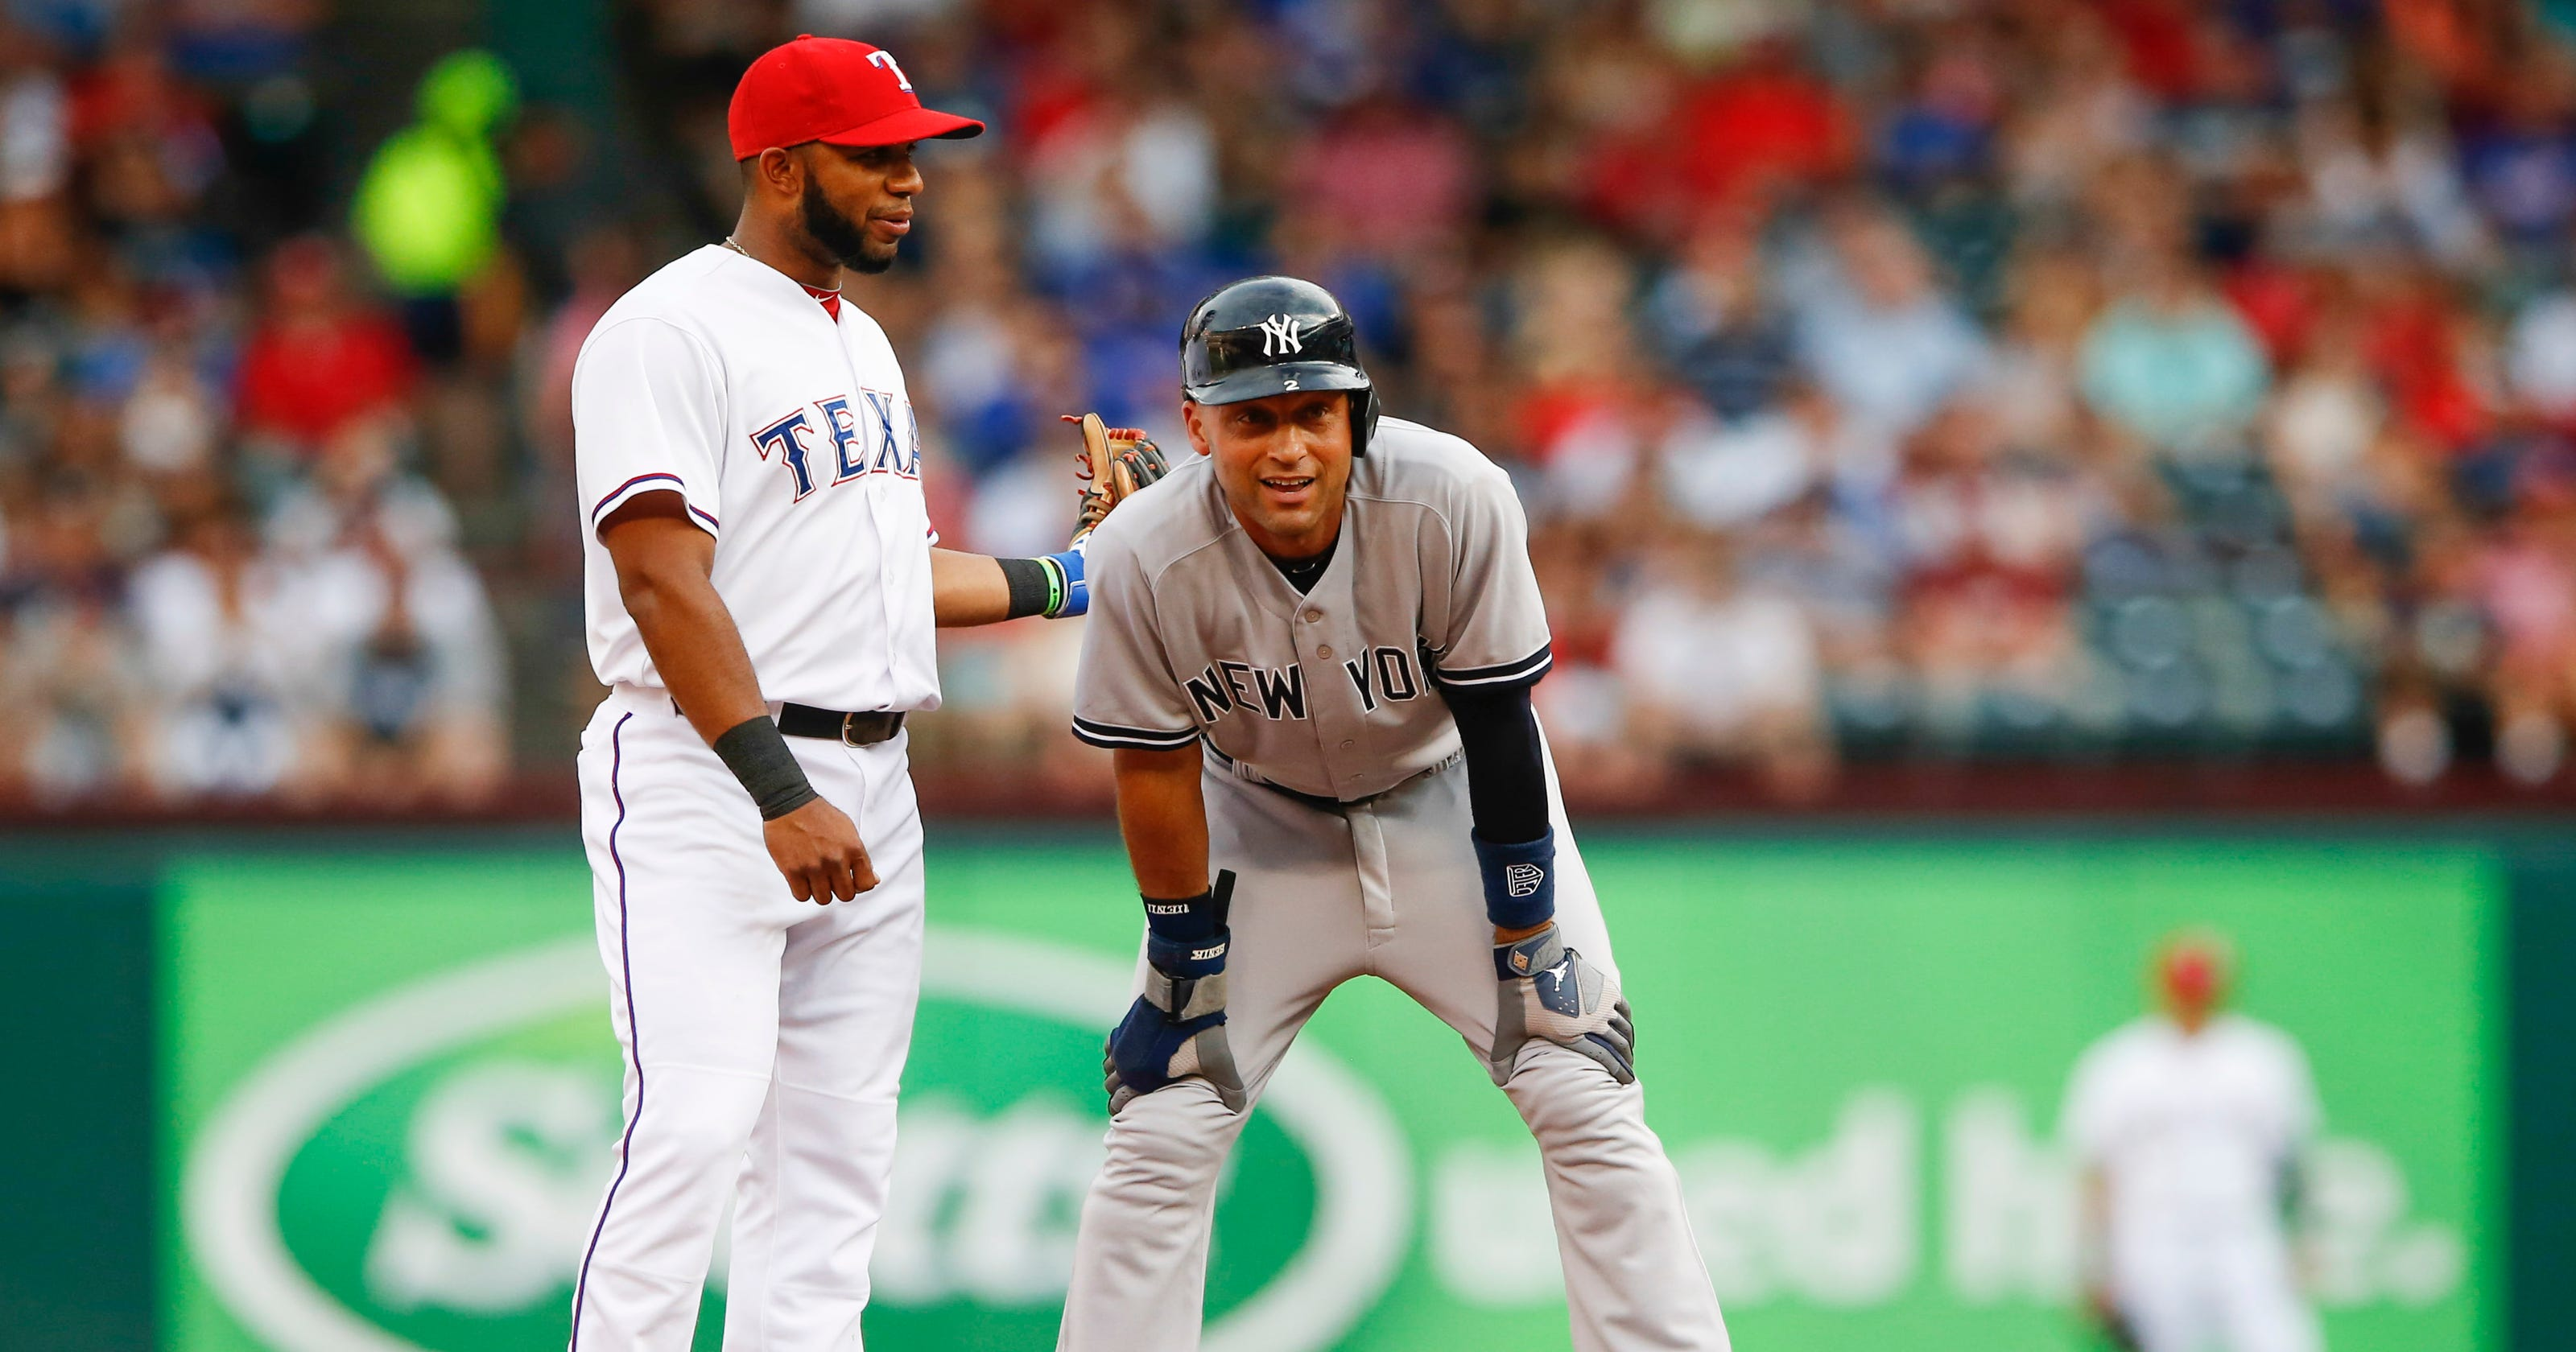 Who replaces Derek Jeter? Some names 2 consider